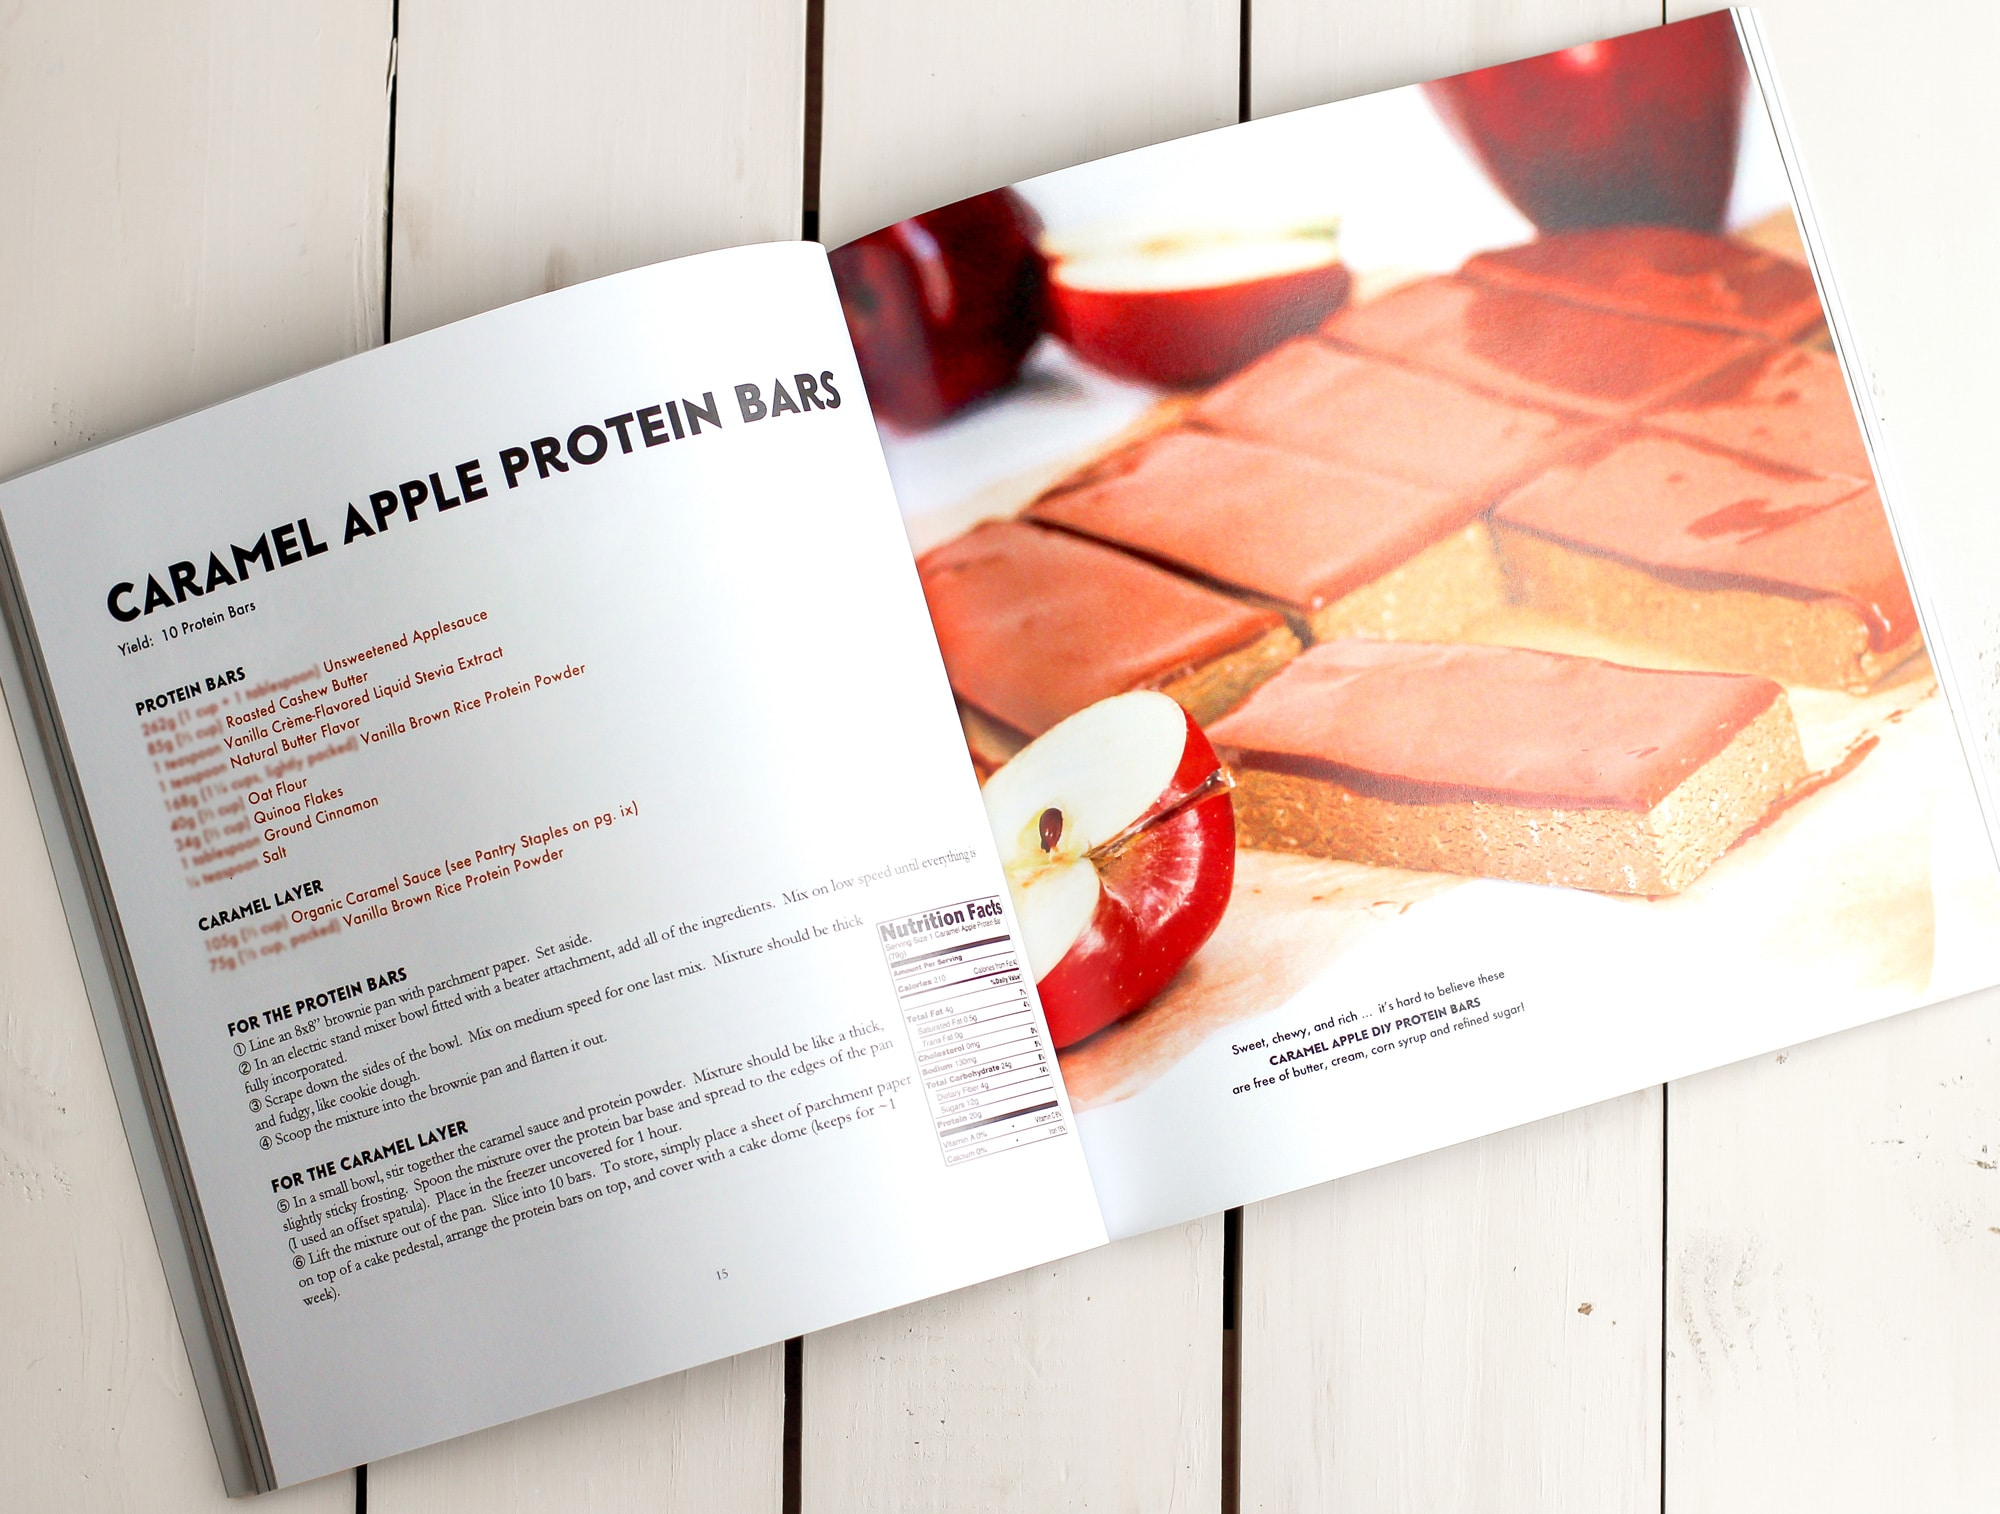 The DIY Protein Bars Cookbook is a collection of 48 easy, healthy, no-bake treats that just happen to be packed with protein! Authored by Jessica Stier of the Desserts with Benefits Blog